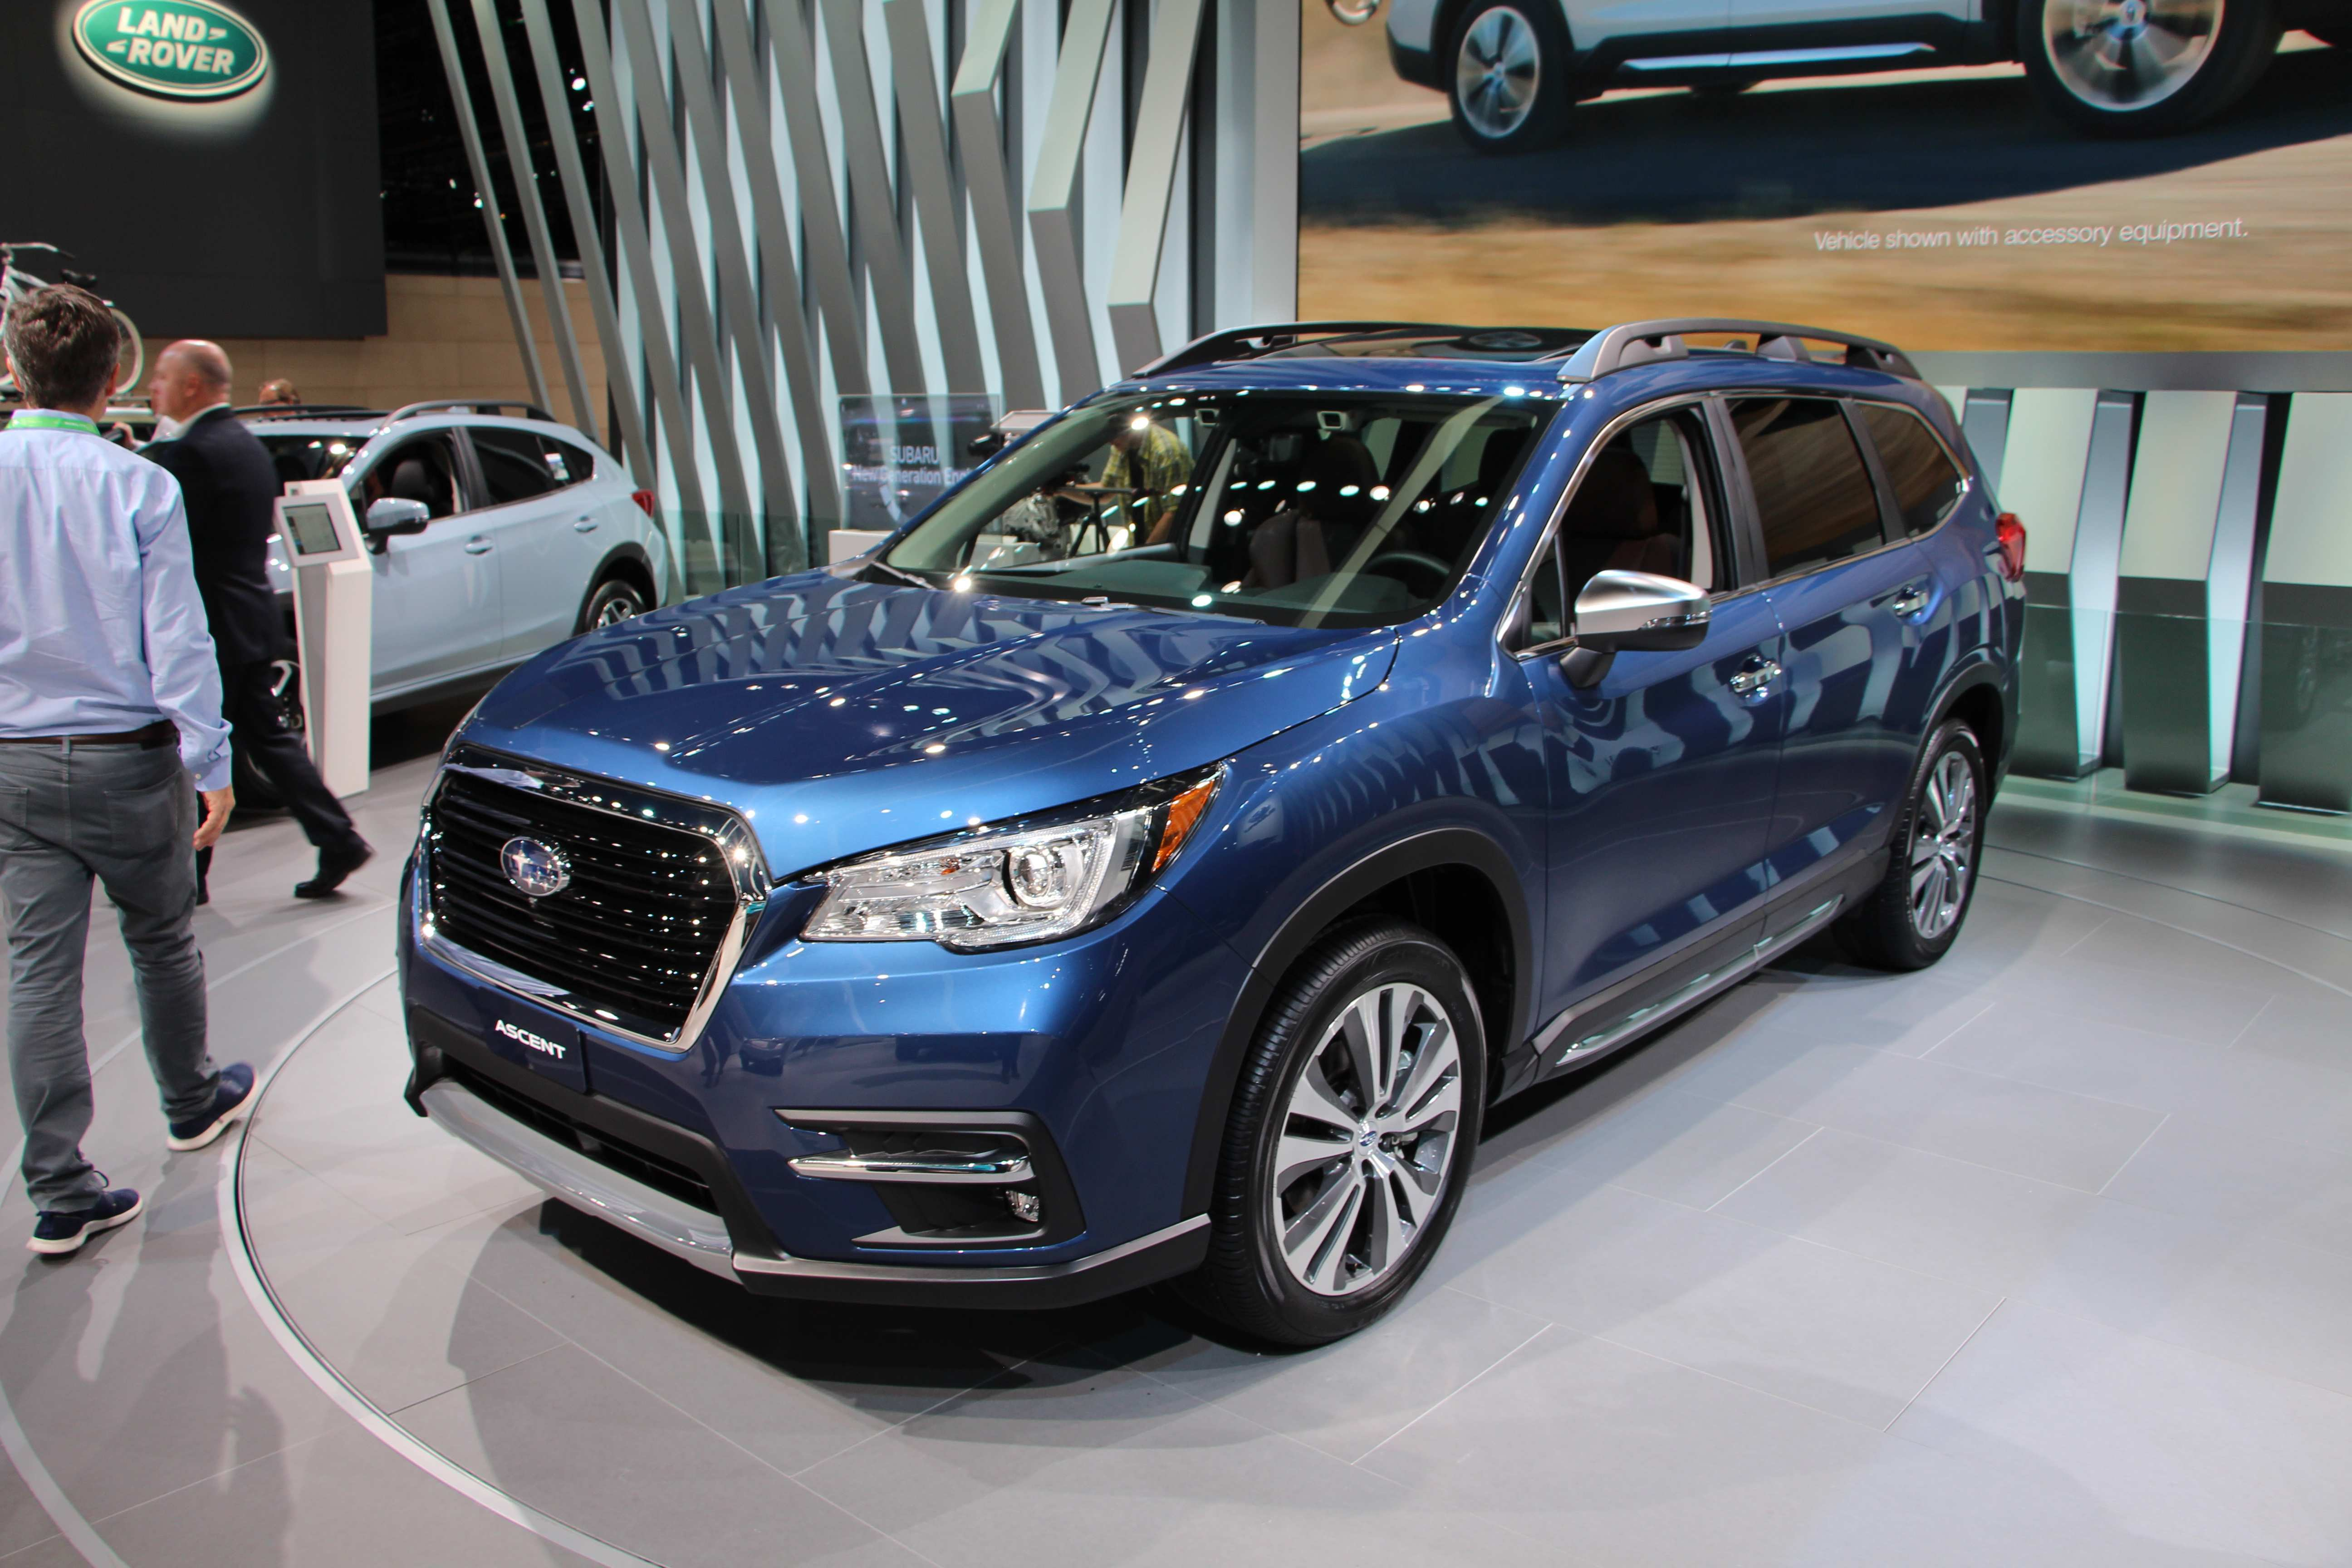 73 Concept of 2019 Subaru Ascent Debut Research New for 2019 Subaru Ascent Debut